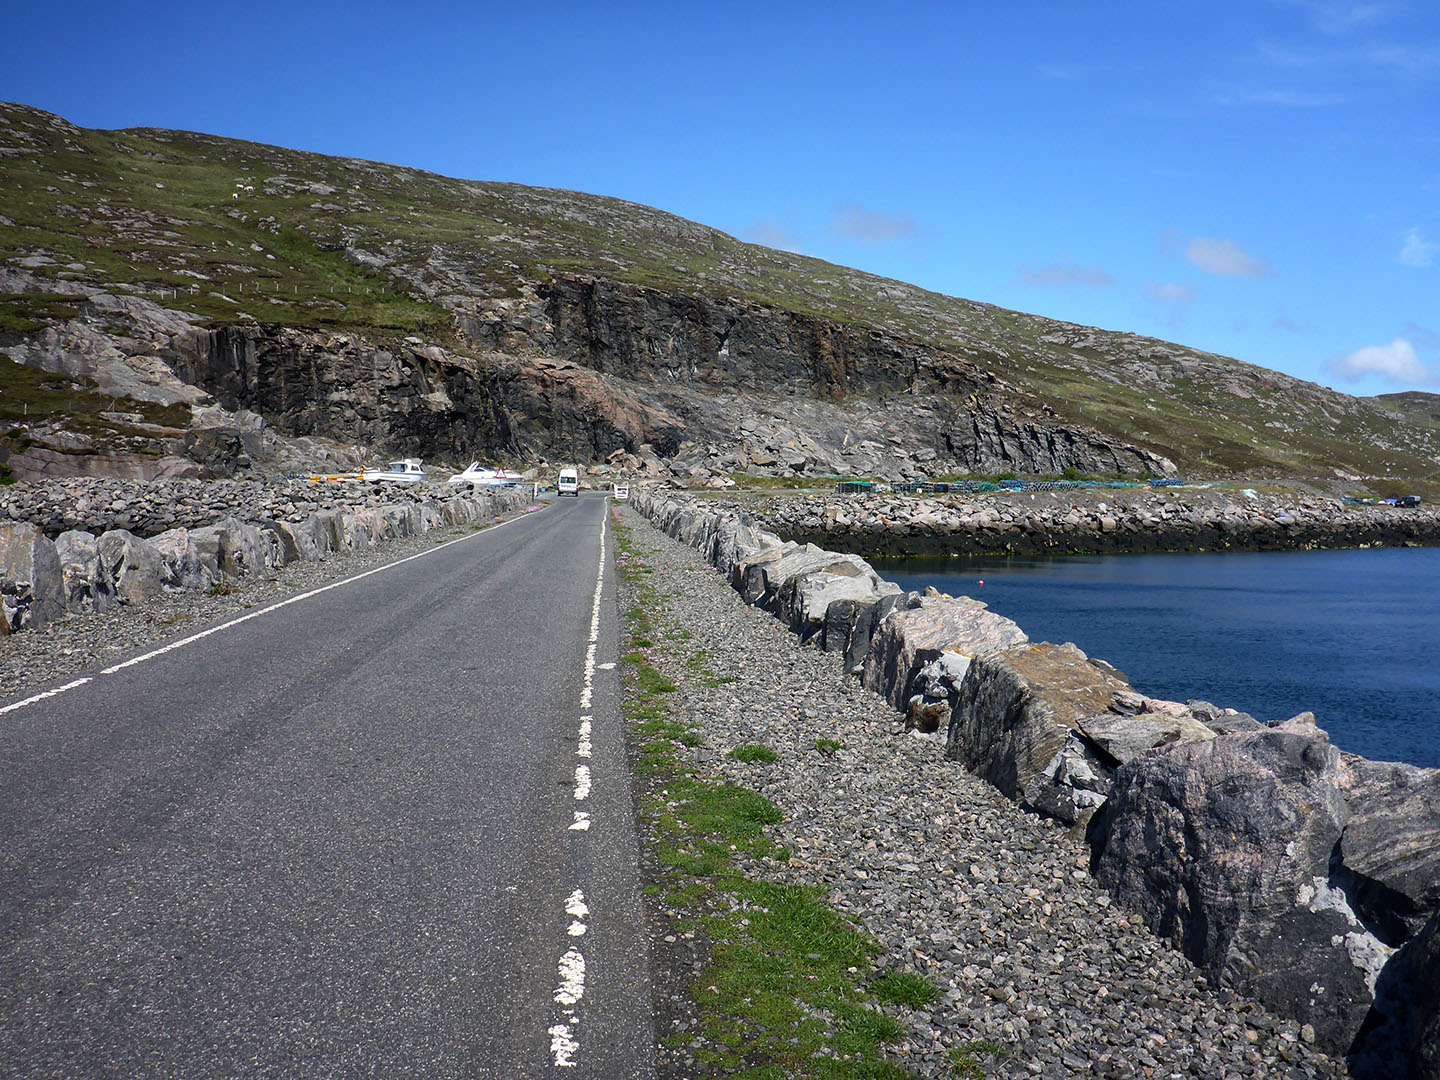 32 Causeway Vatersay to Barra